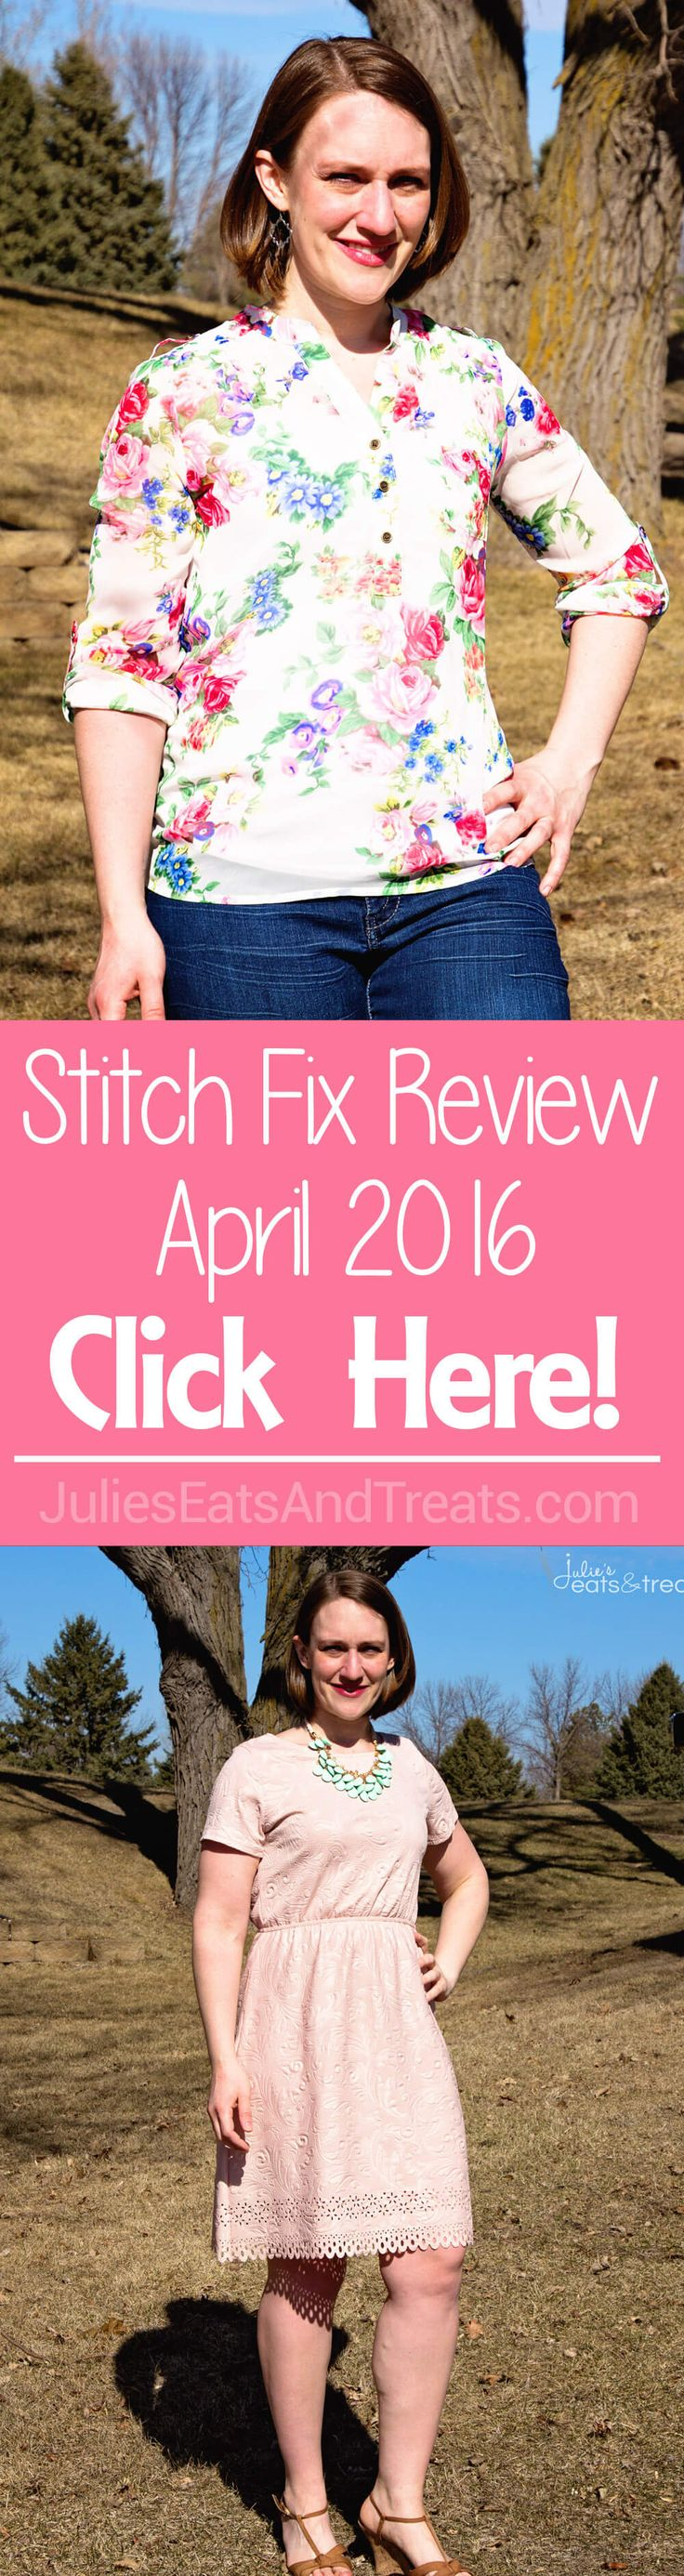 Stitch Fix Review April 2016 ~ Personalized Stylists Pick Out a Selection of Five Clothing Items or Accessories and Ship it to Your Doorstep! ~ http://www.julieseatsandtreats.com